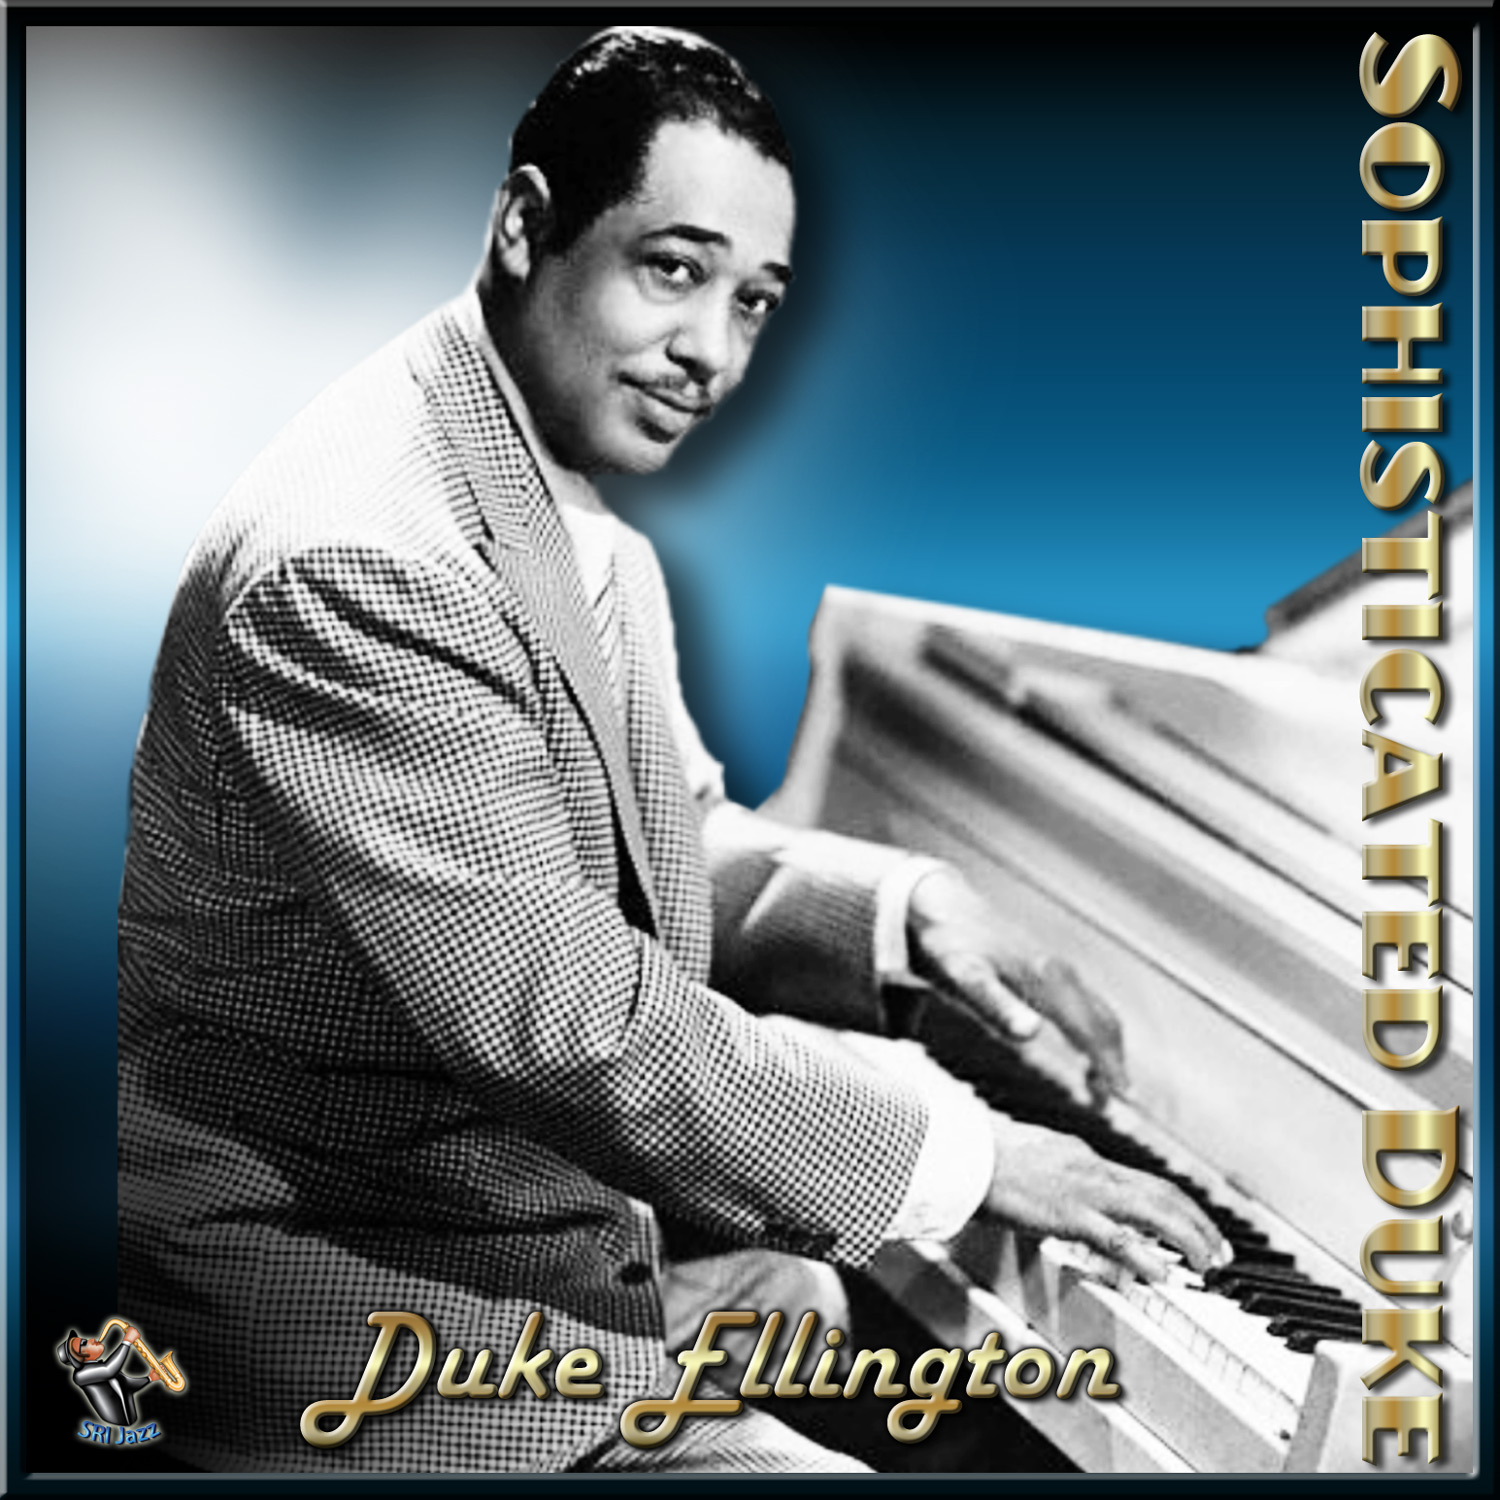 Duke ellington sophisticated duke sri label group the for The ellington